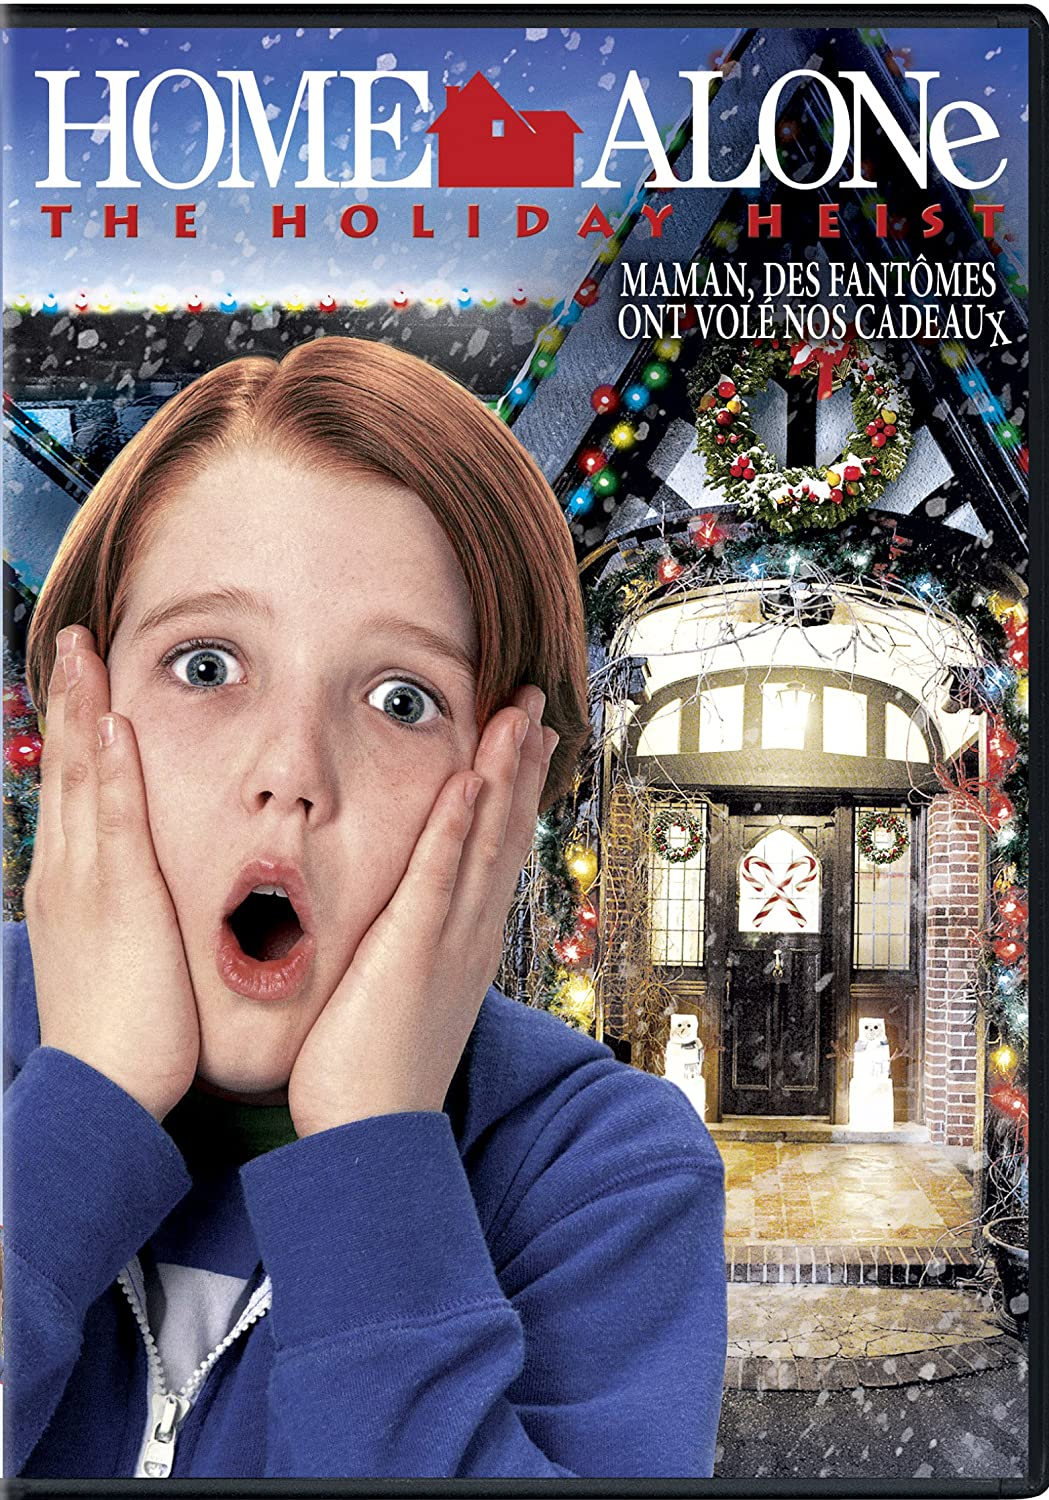 Home Alone 5 - The Holiday Heist